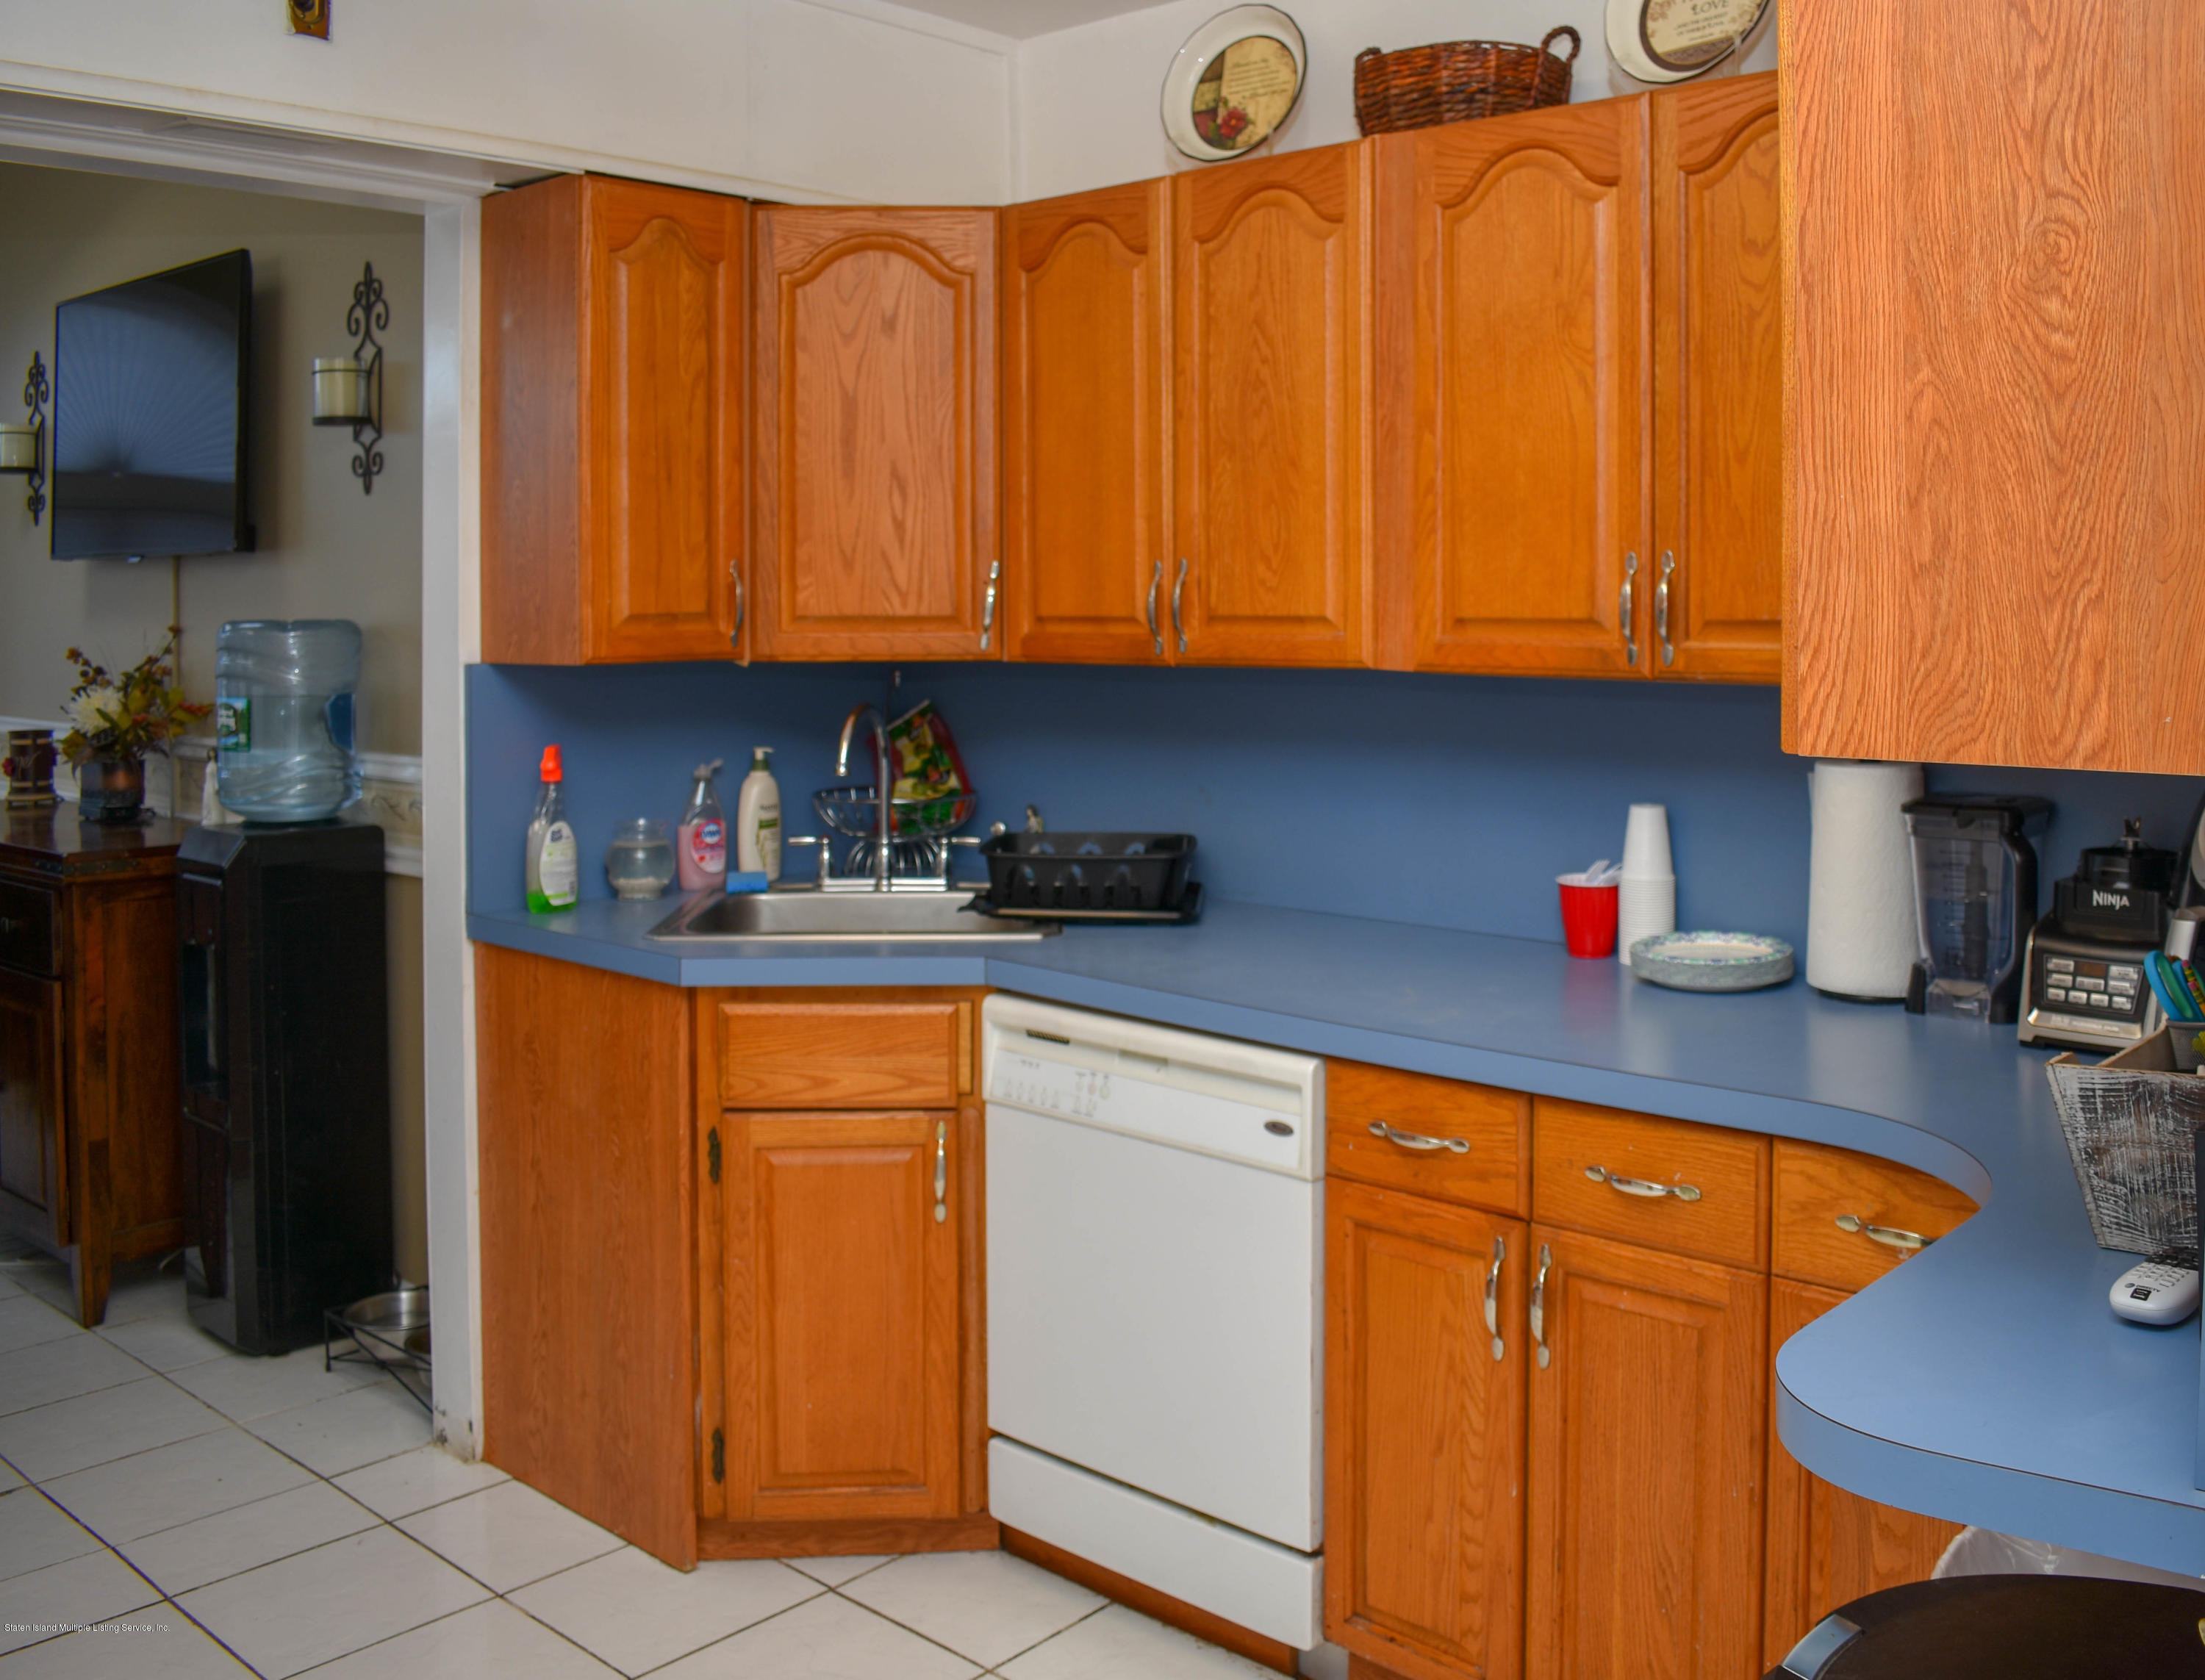 Single Family - Detached 71 Excelsior Avenue  Staten Island, NY 10309, MLS-1126131-10